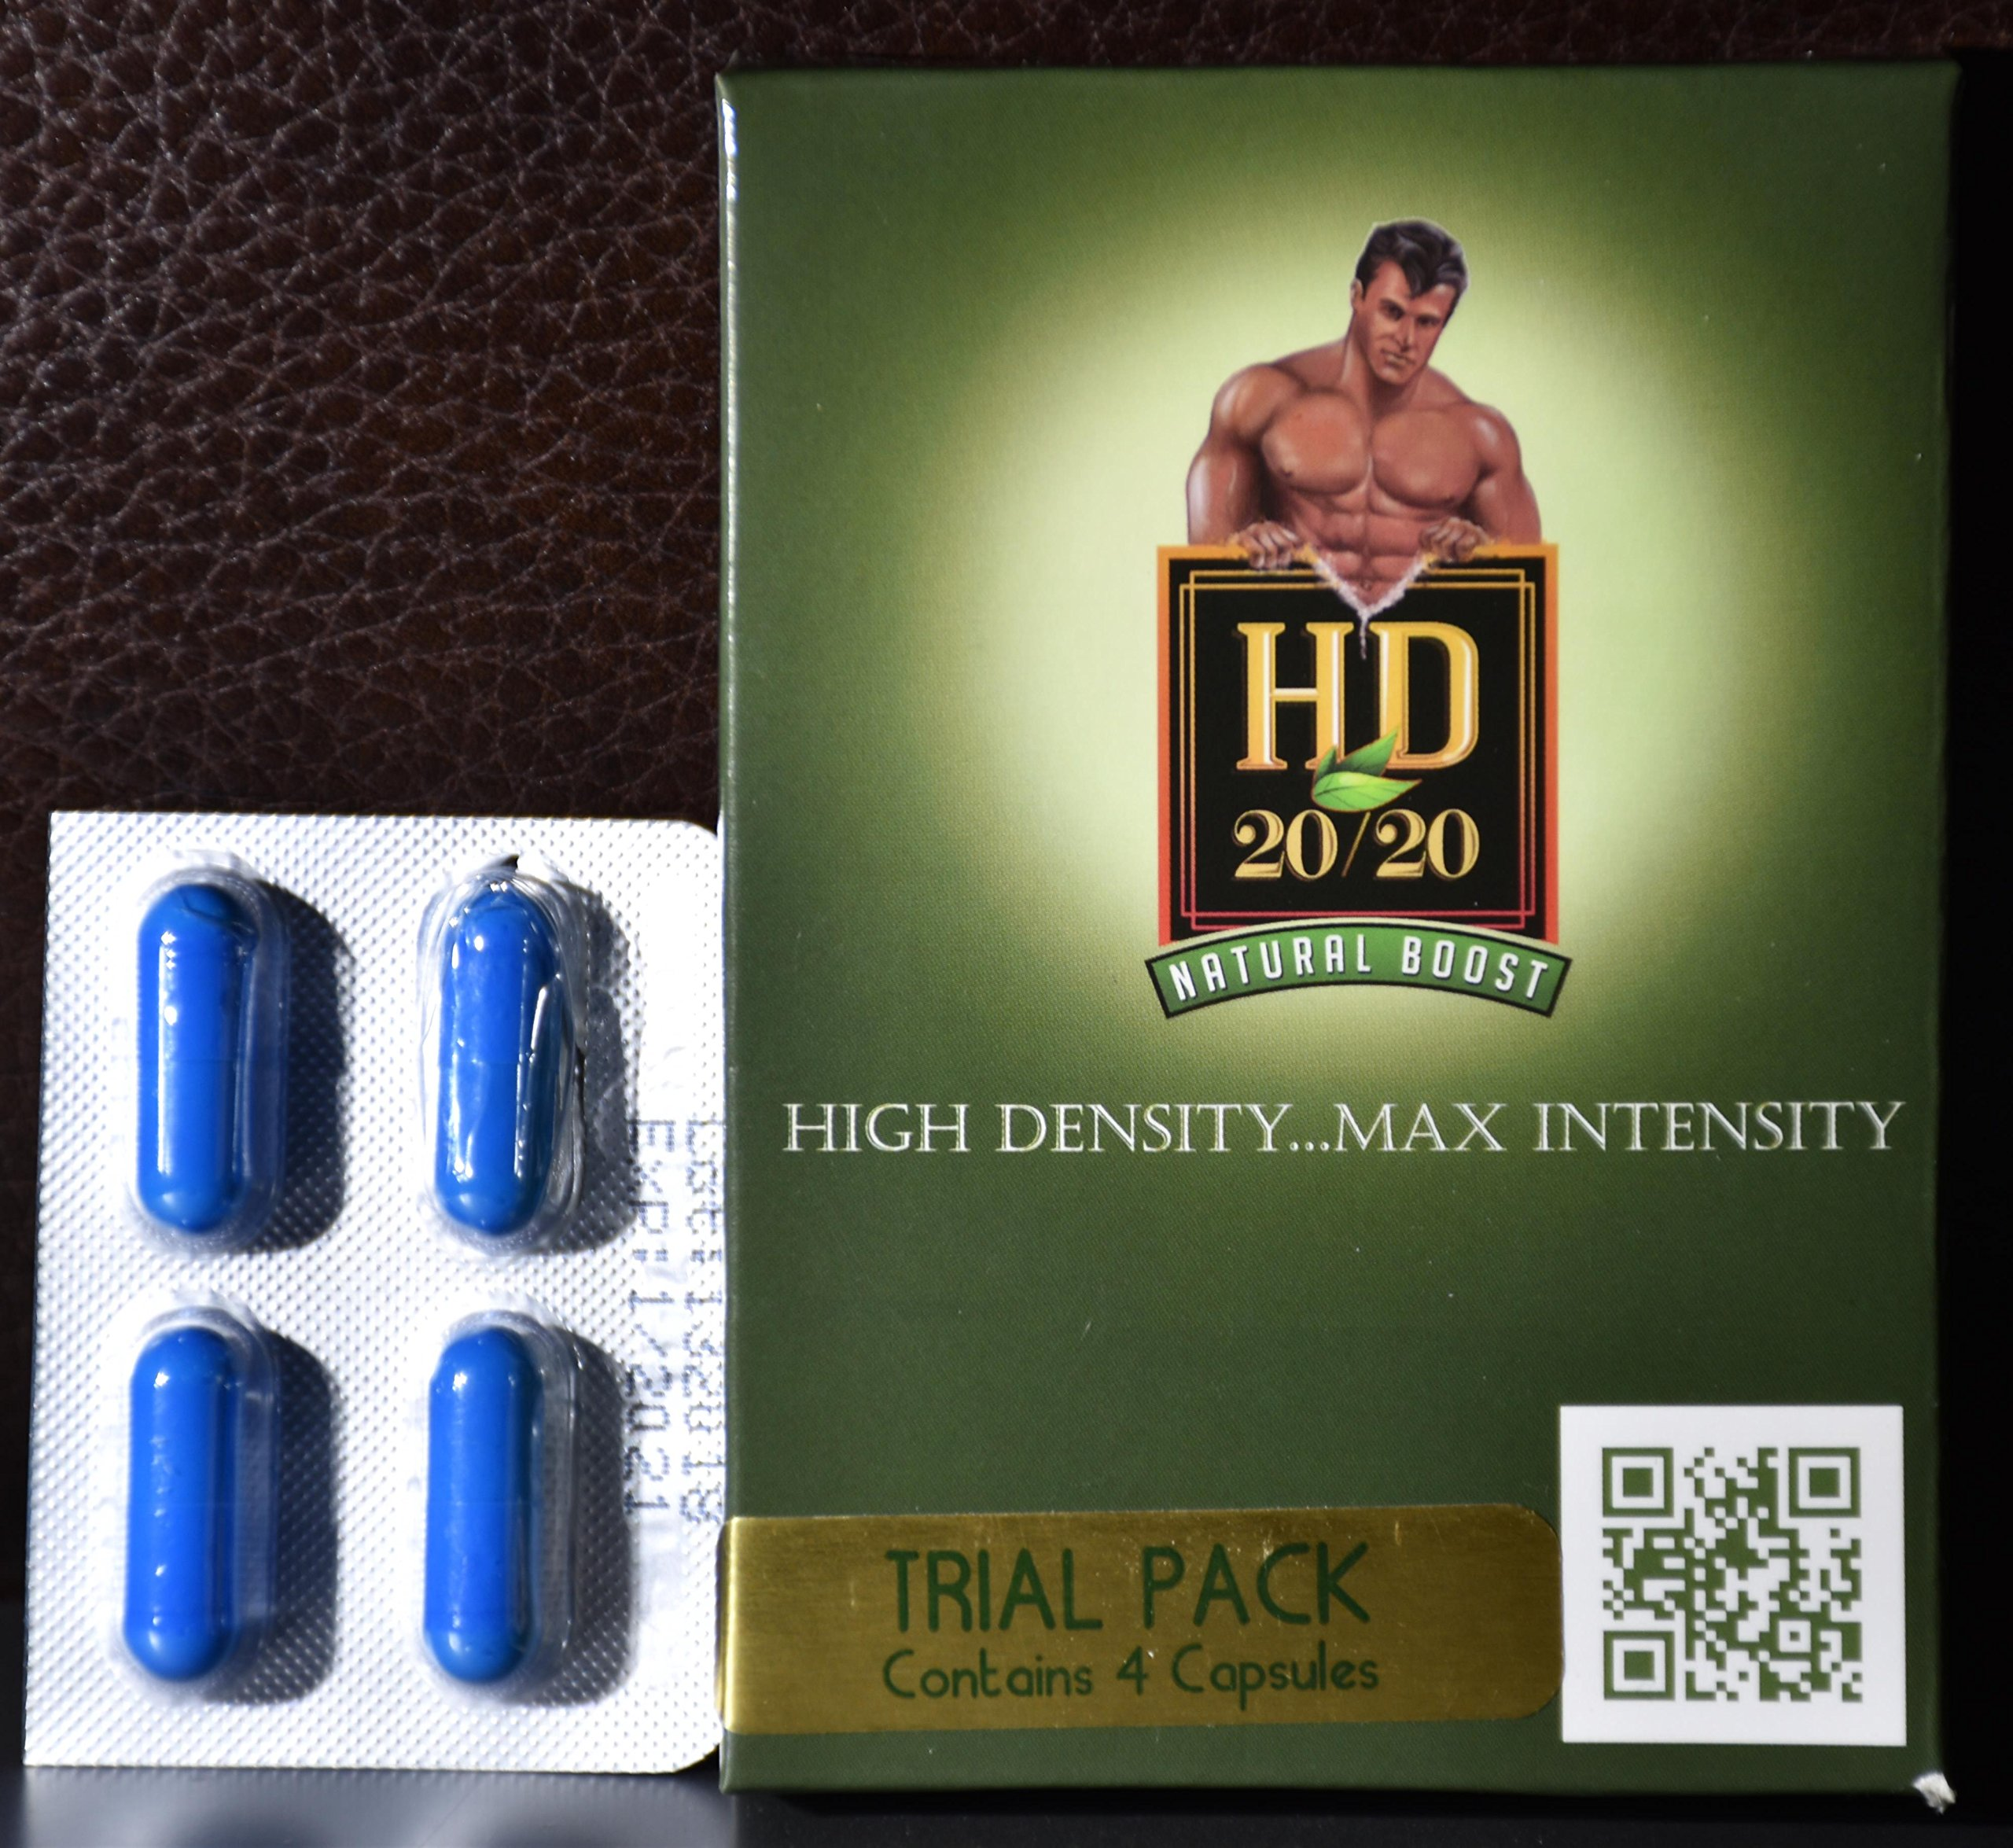 HD 2020 NEWLY REFORMULATED 2018 POWERFUL NATURAL MALE BOOSTER. Trial Pack (4) Capsules.by the makers of Schwinnng